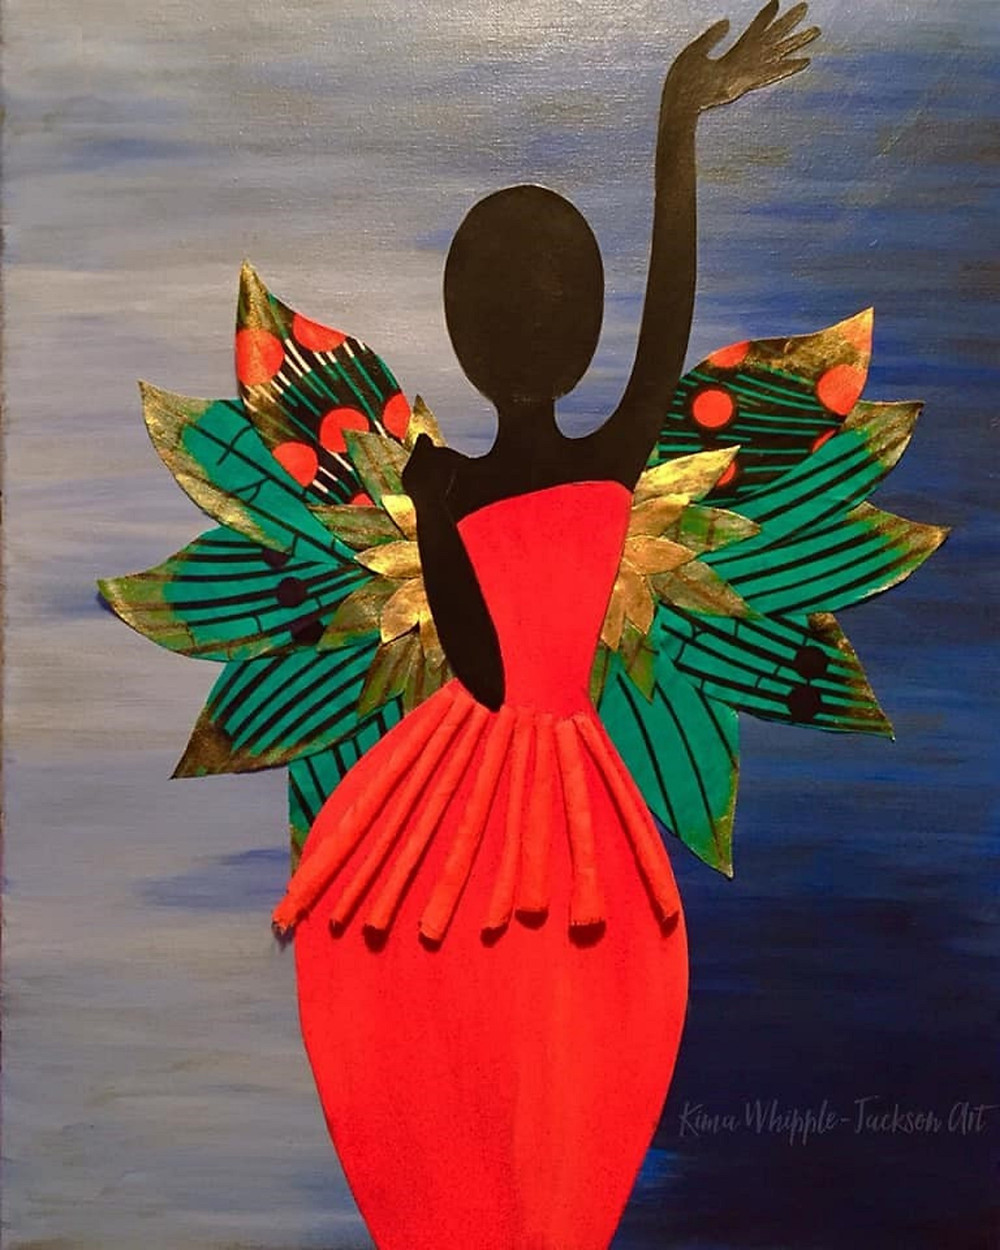 This piece represents freedom, along with complete and absolute resolve in not caring what anyone thinks. I wanted to create something that exemplified the joy I felt when I finally began to express myself freely. I enjoy simple figure drawings and bright, bold color. Again, beautiful African Ankara print fabric was used for the wings in the original mixed media painting.